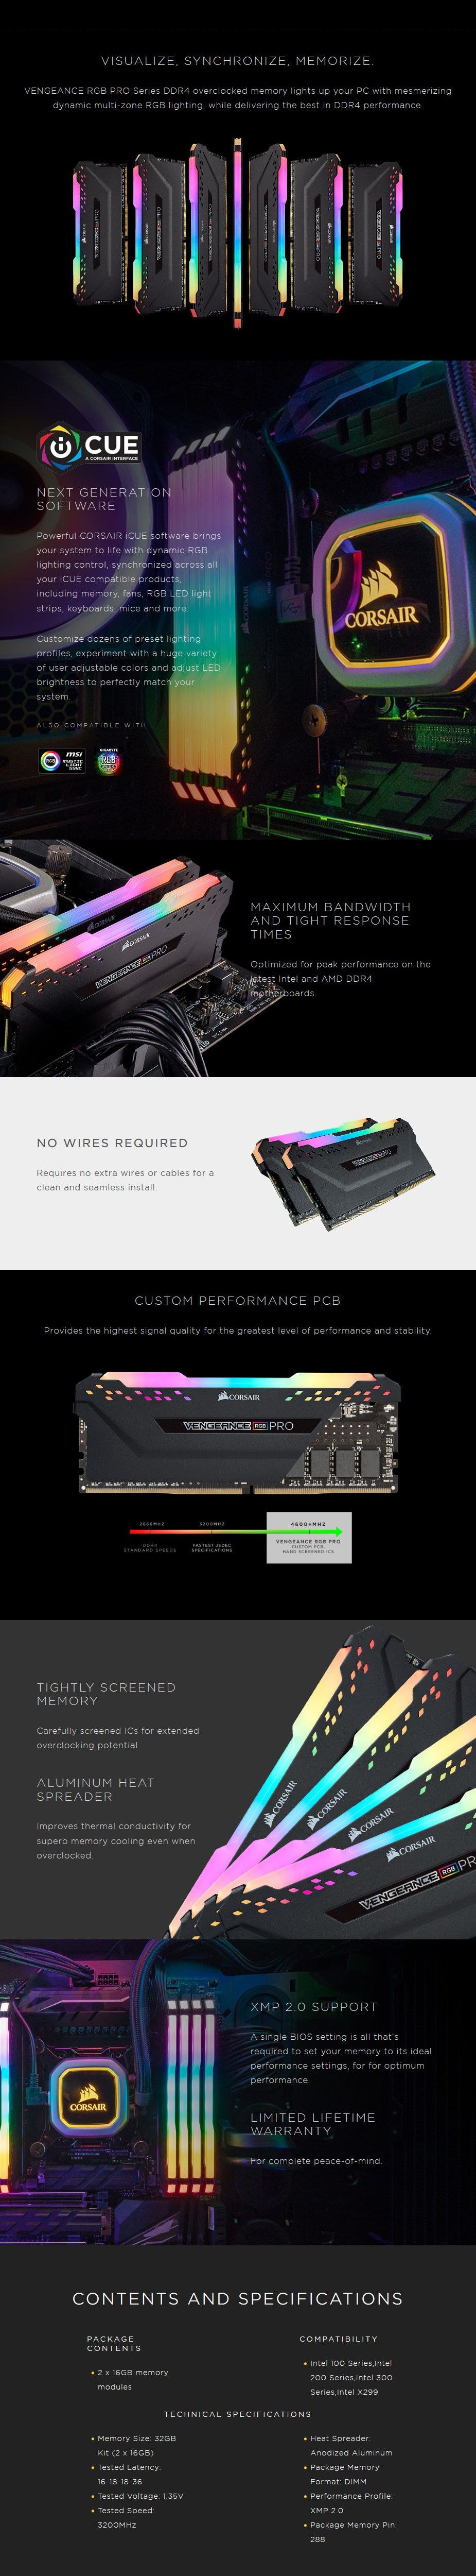 Corsair Vengeance RGB PRO 32GB (2x 16GB) DDR4 3200MHz Memory - Black - Desktop Overview